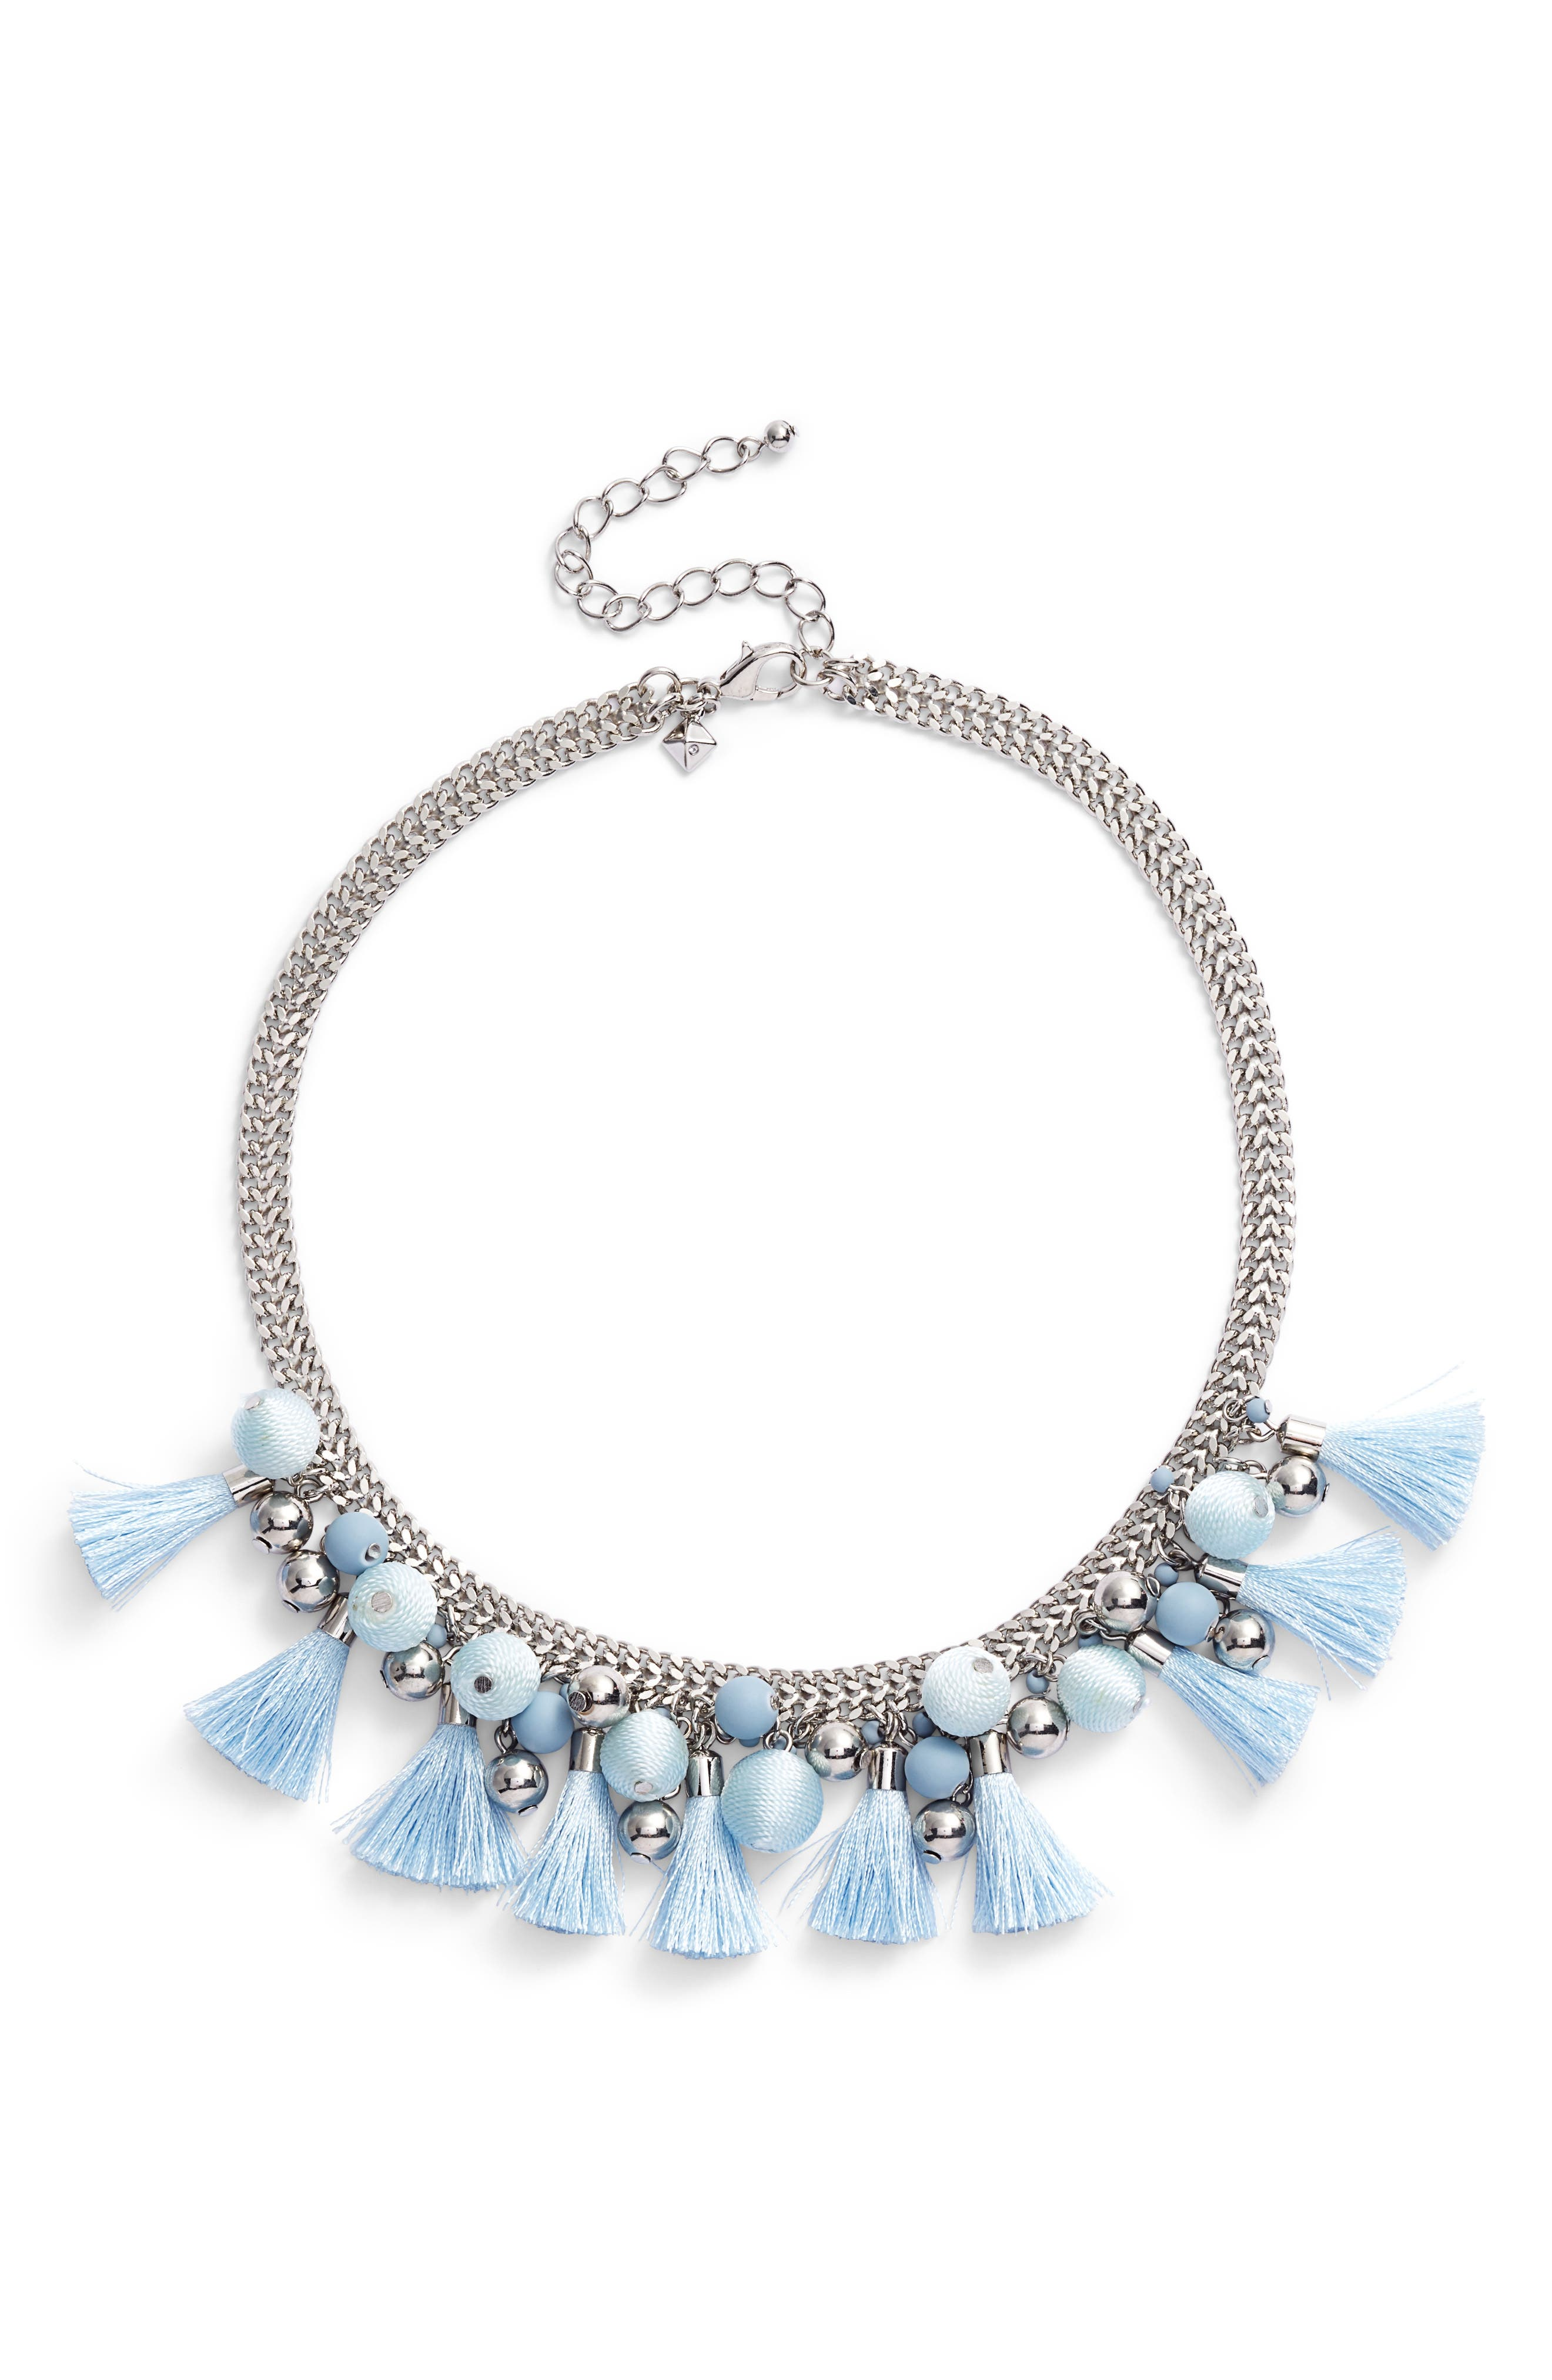 Bauble & Tassel Collar Necklace,                         Main,                         color, Blue/ Silver